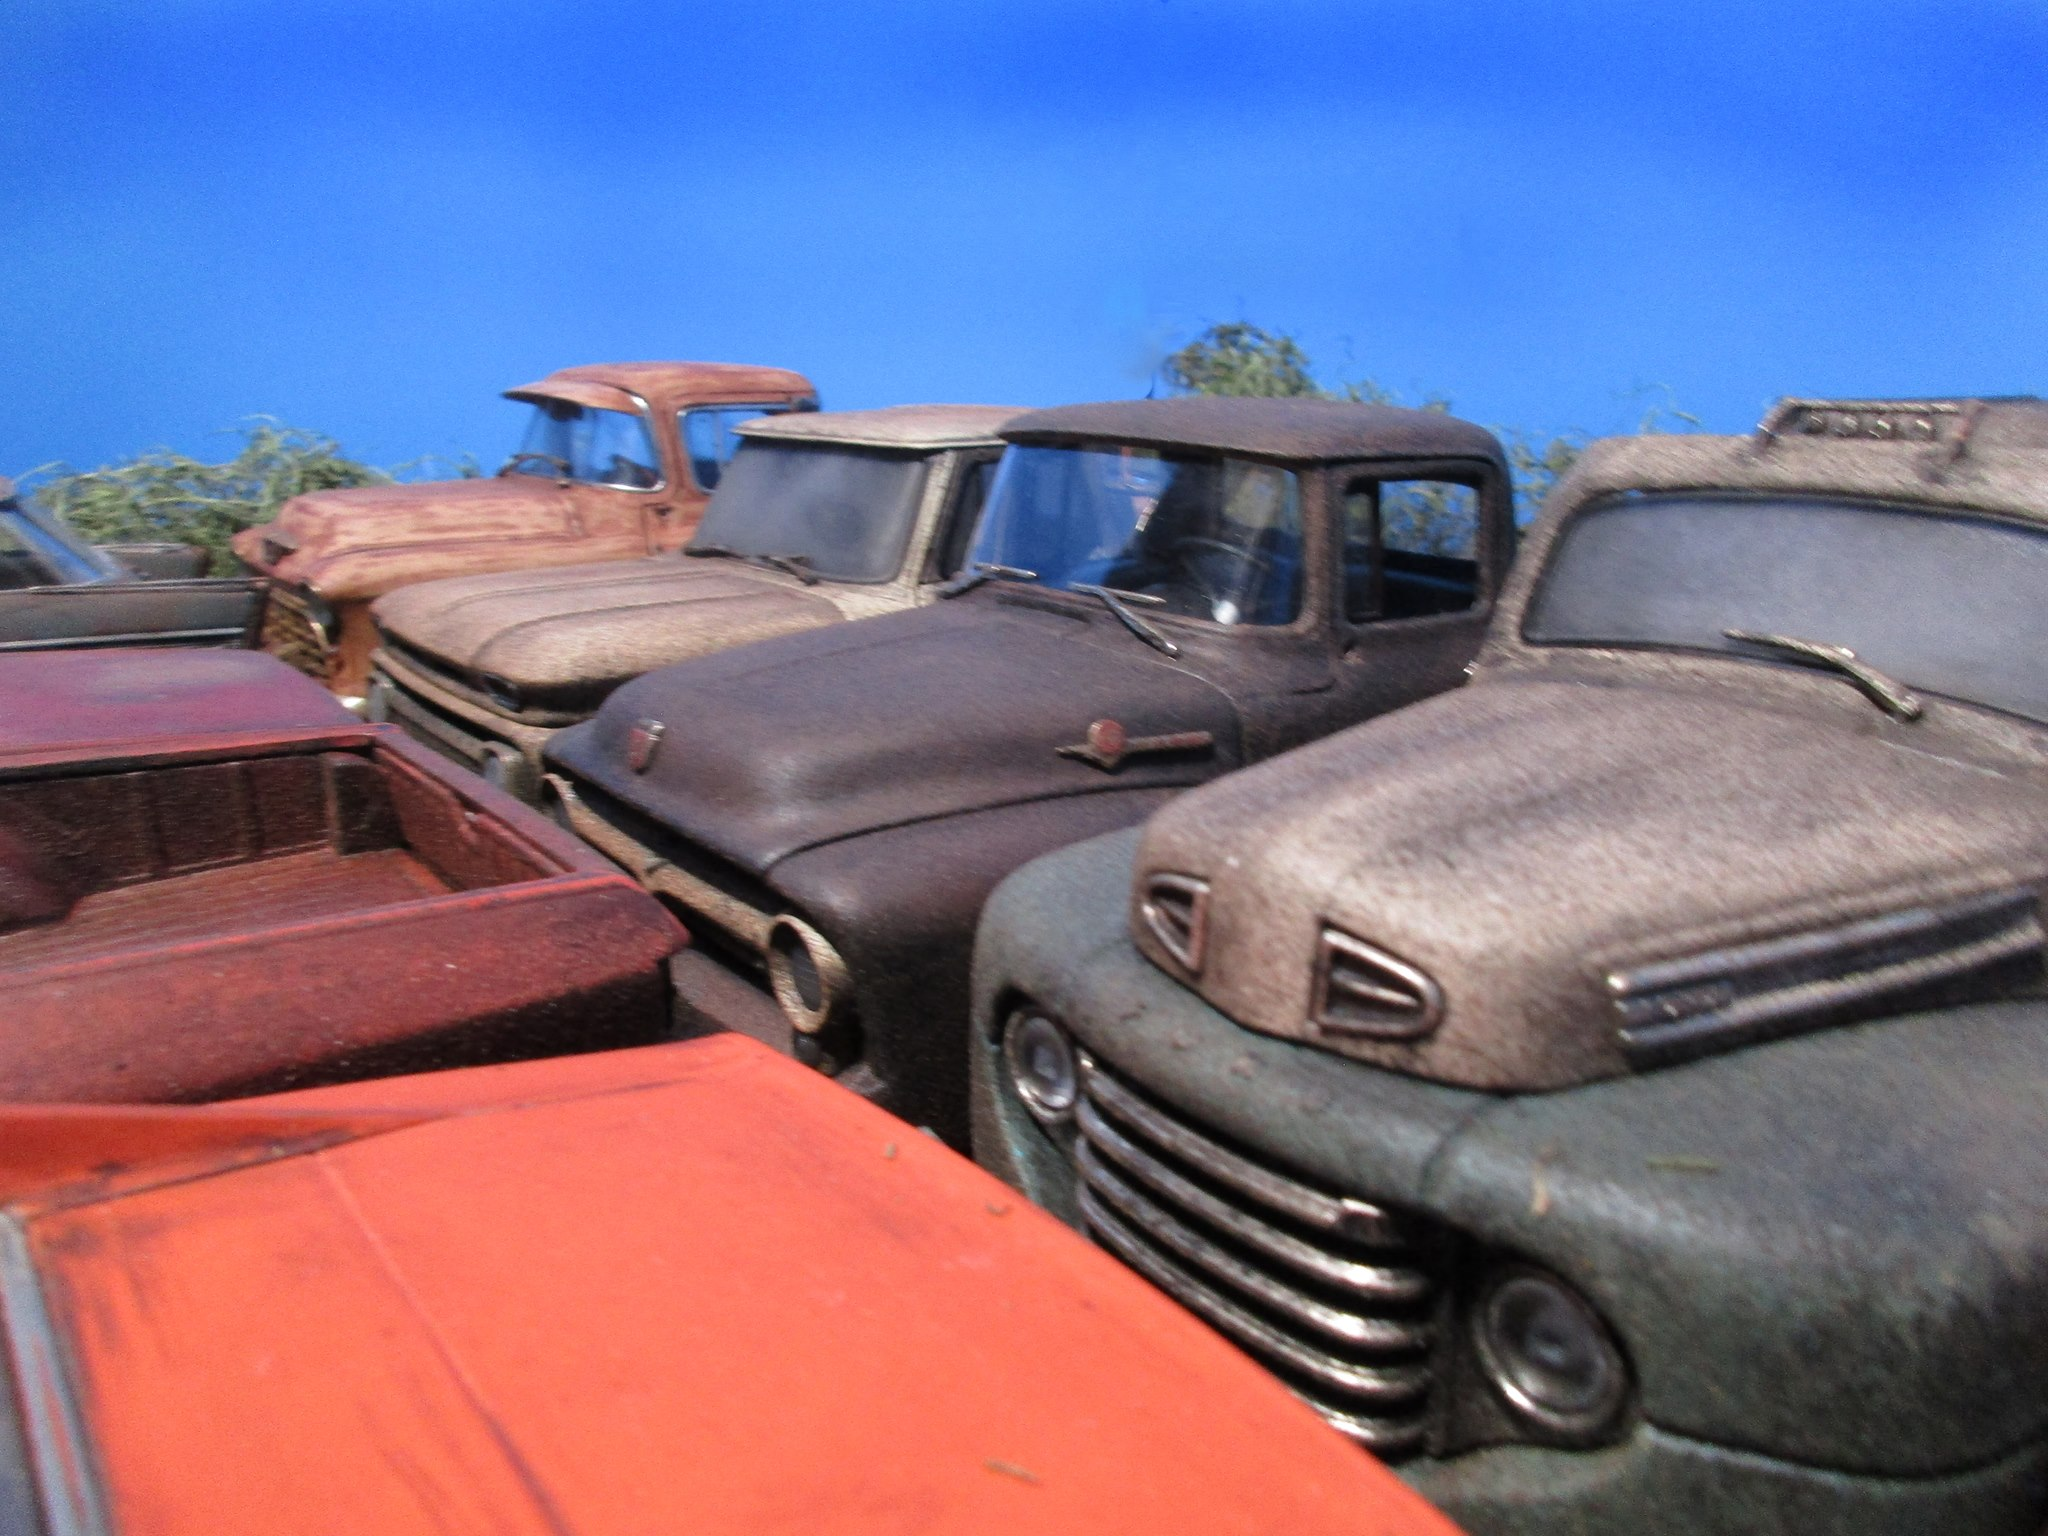 Toasted-Autos-Weathered-Die-Cast-Cars-9